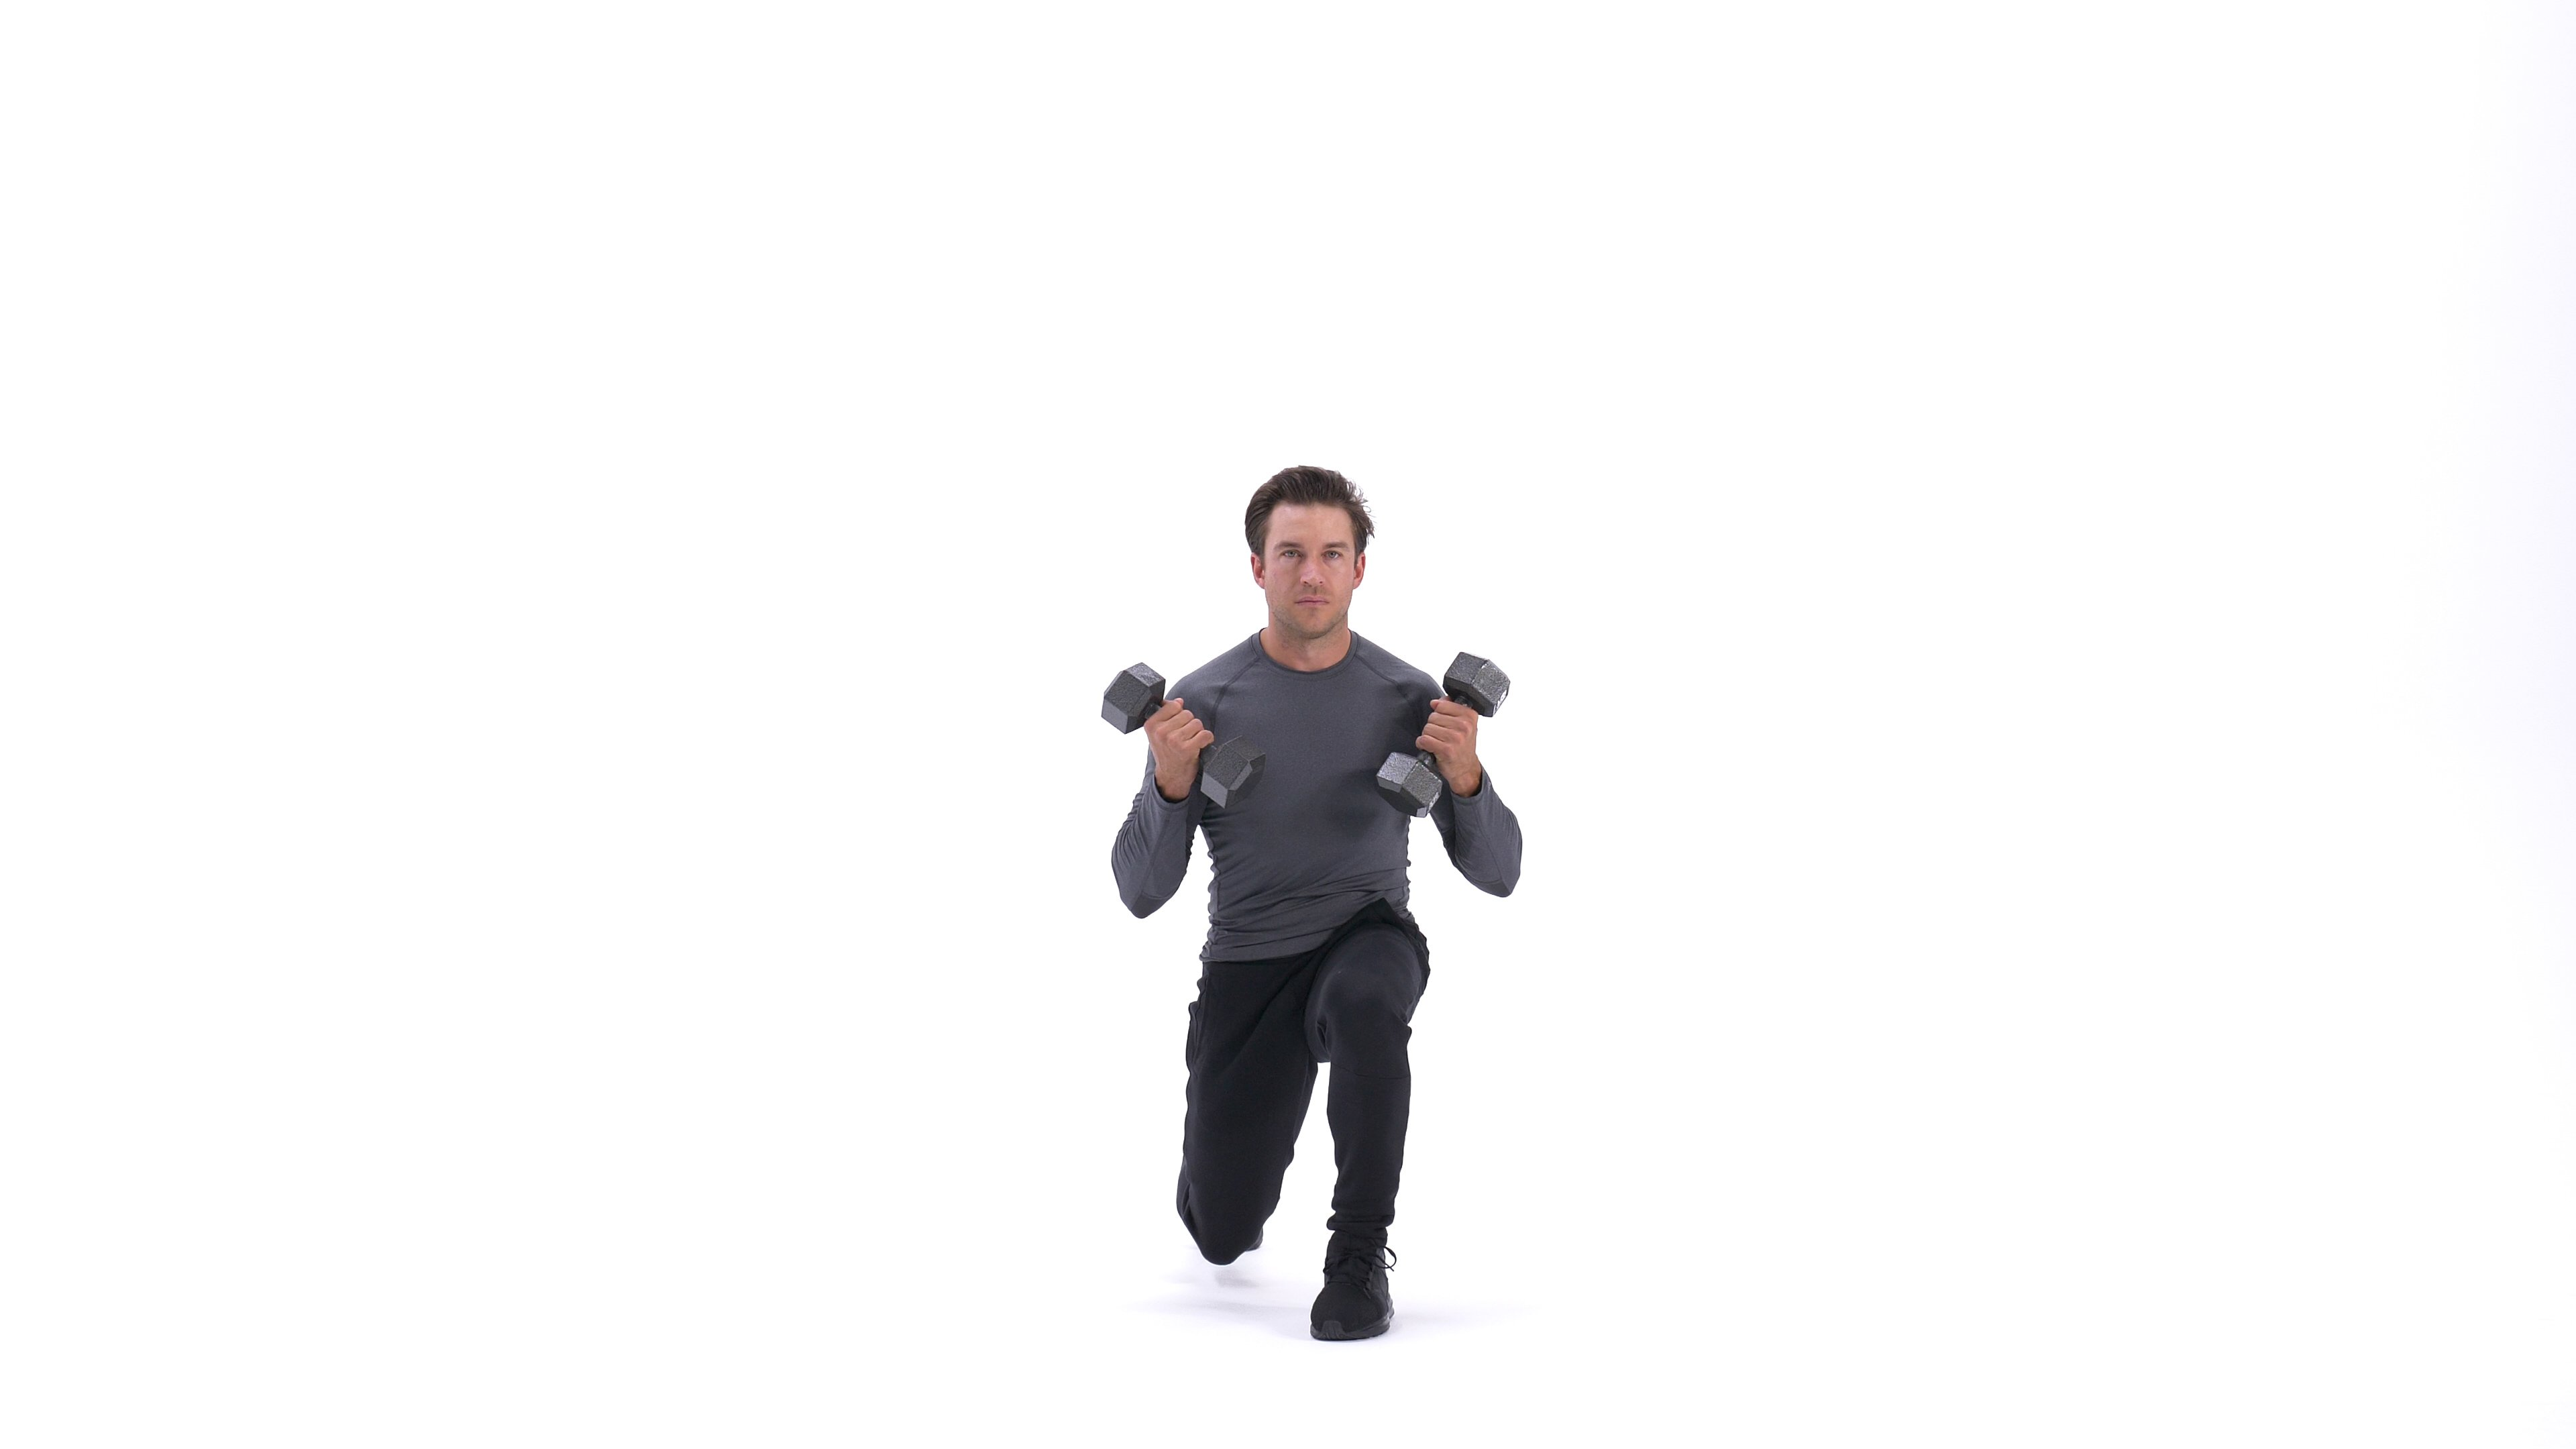 Dumbbell lunge with biceps curl image